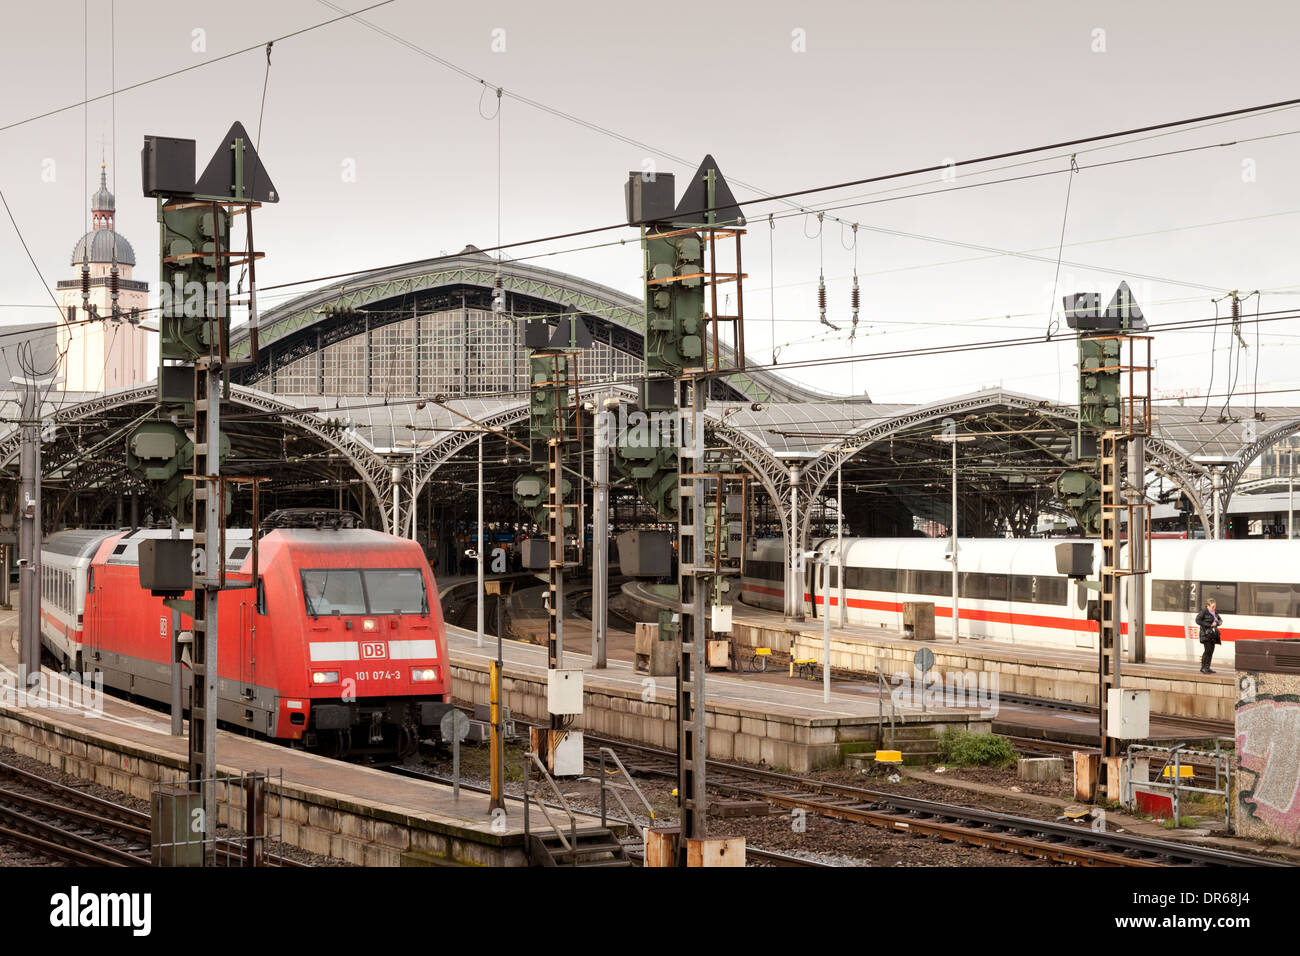 Kbk Köln railway station german stock photos railway station german stock